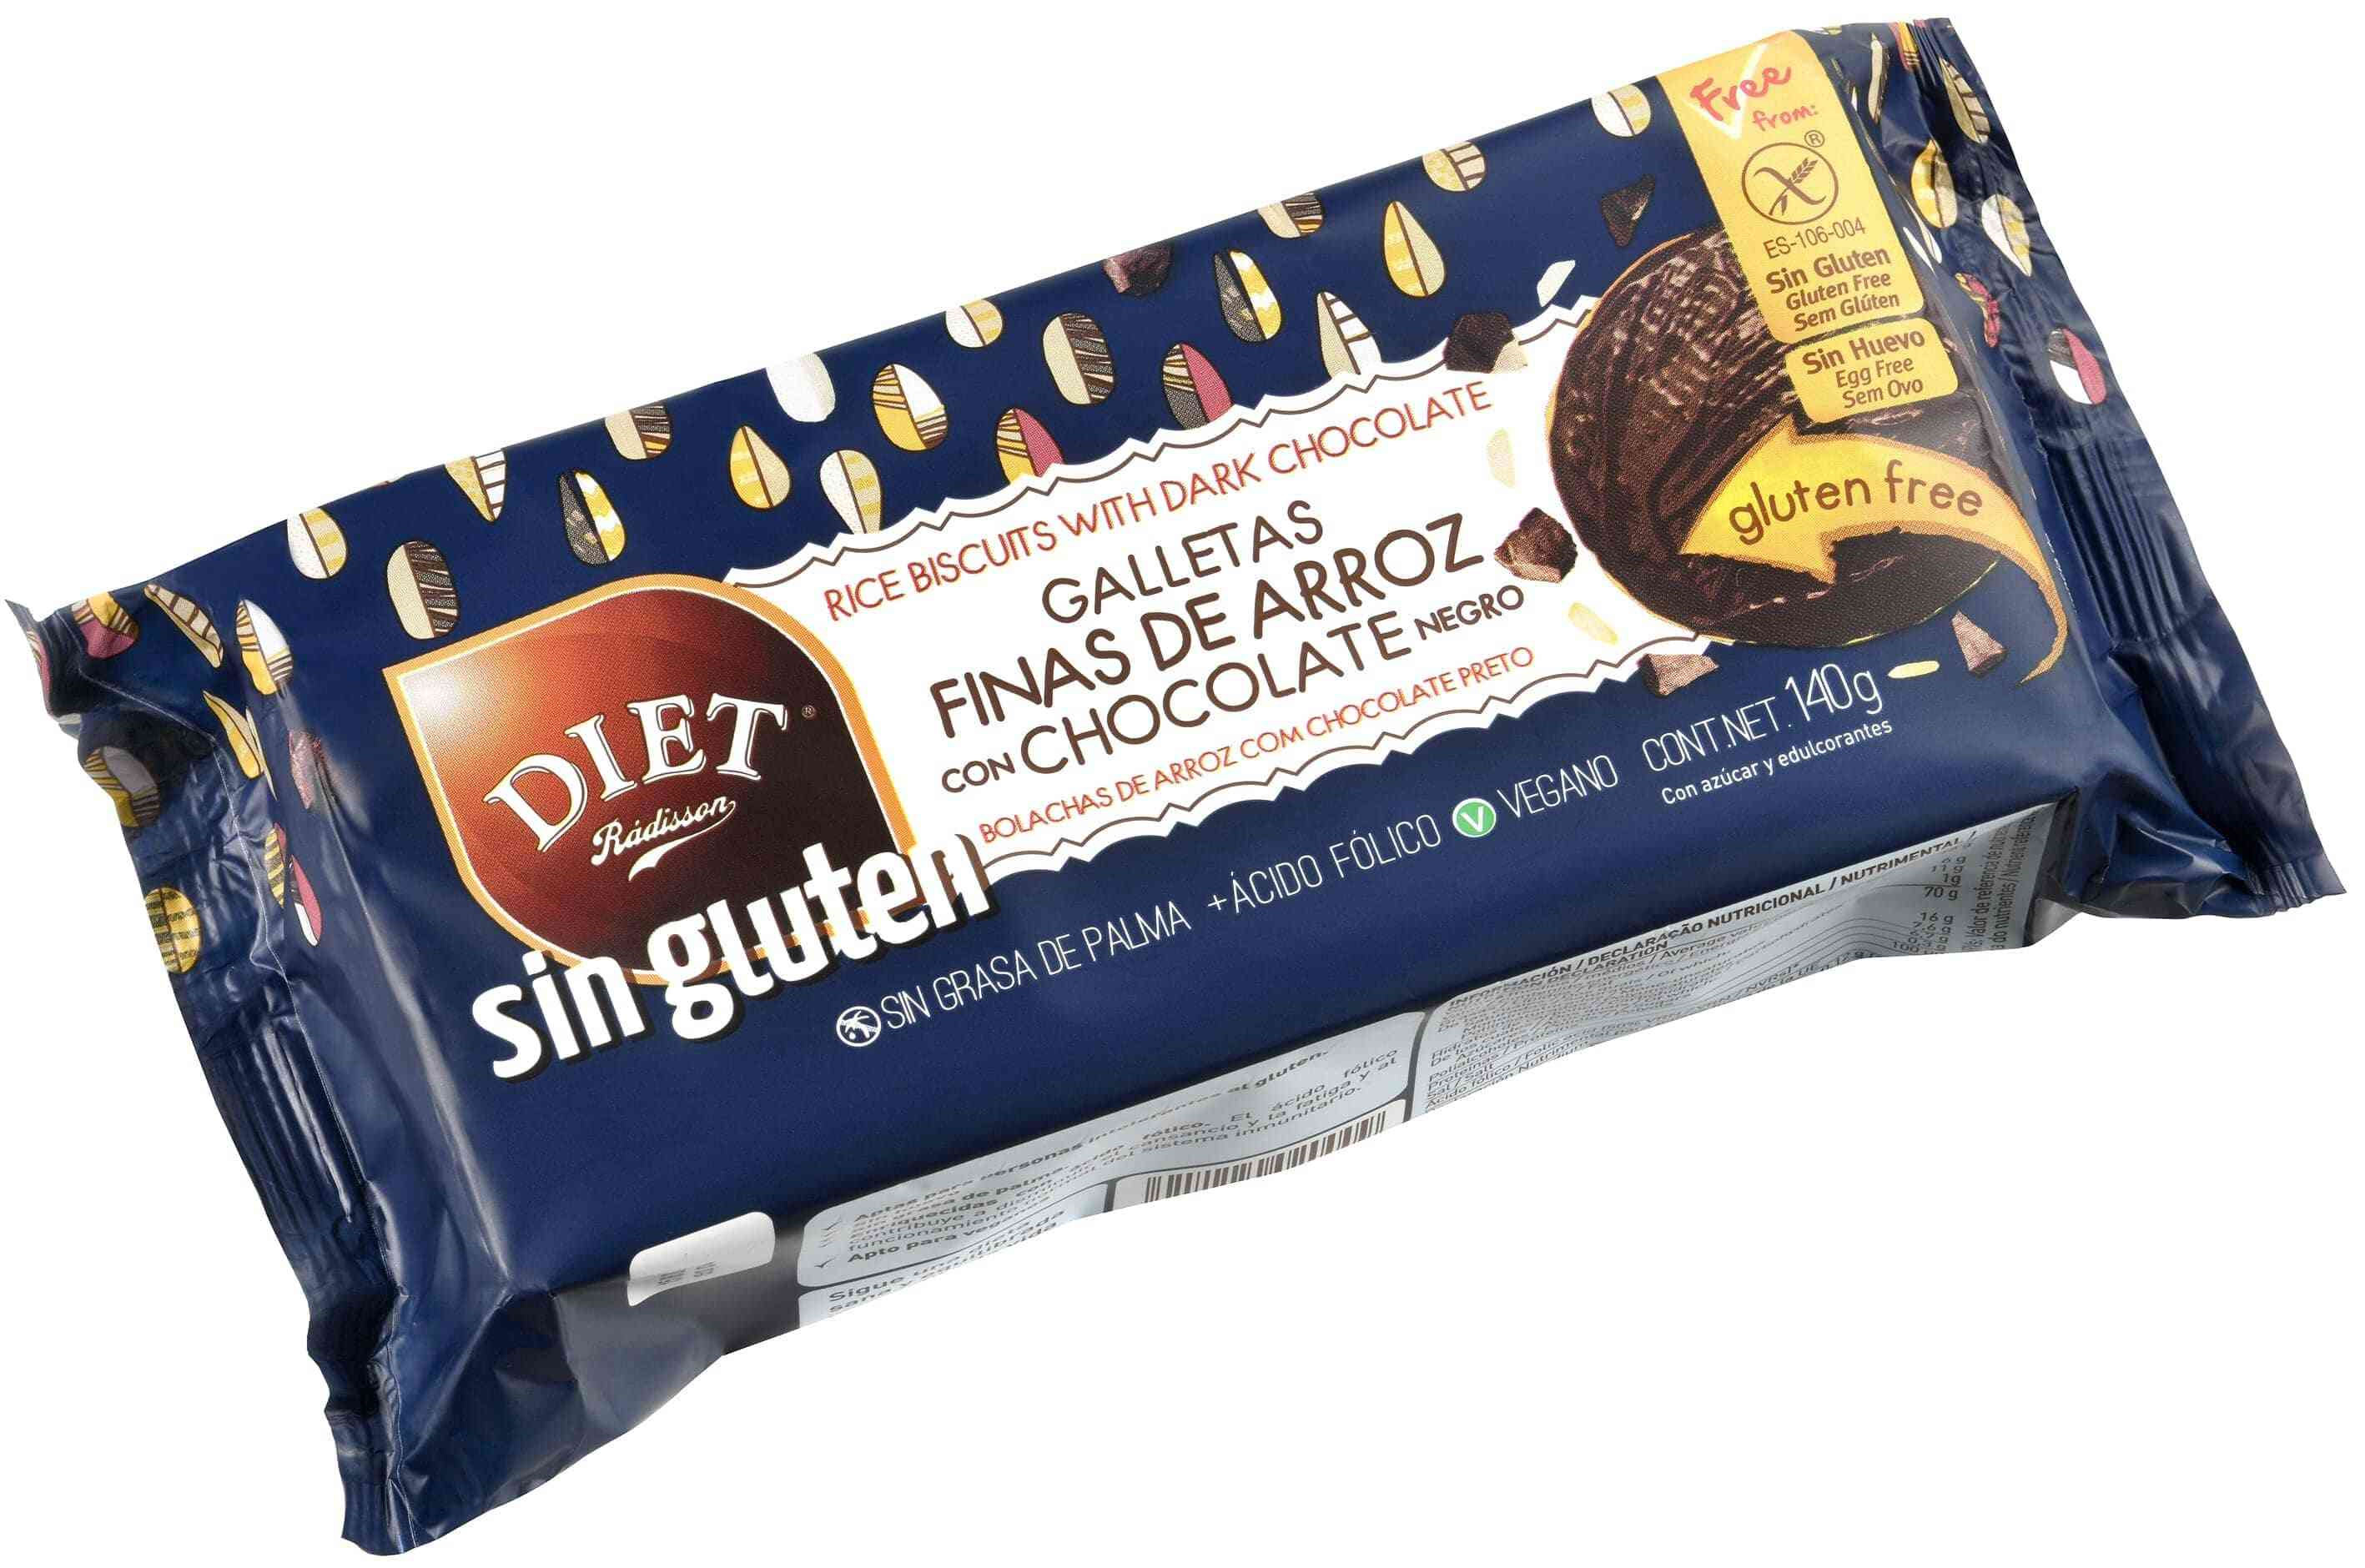 GALLETAS FINAS ARROZ CHOCOLATE  S GLUTEN 140 GR DIET RADISSON en Biovegalia